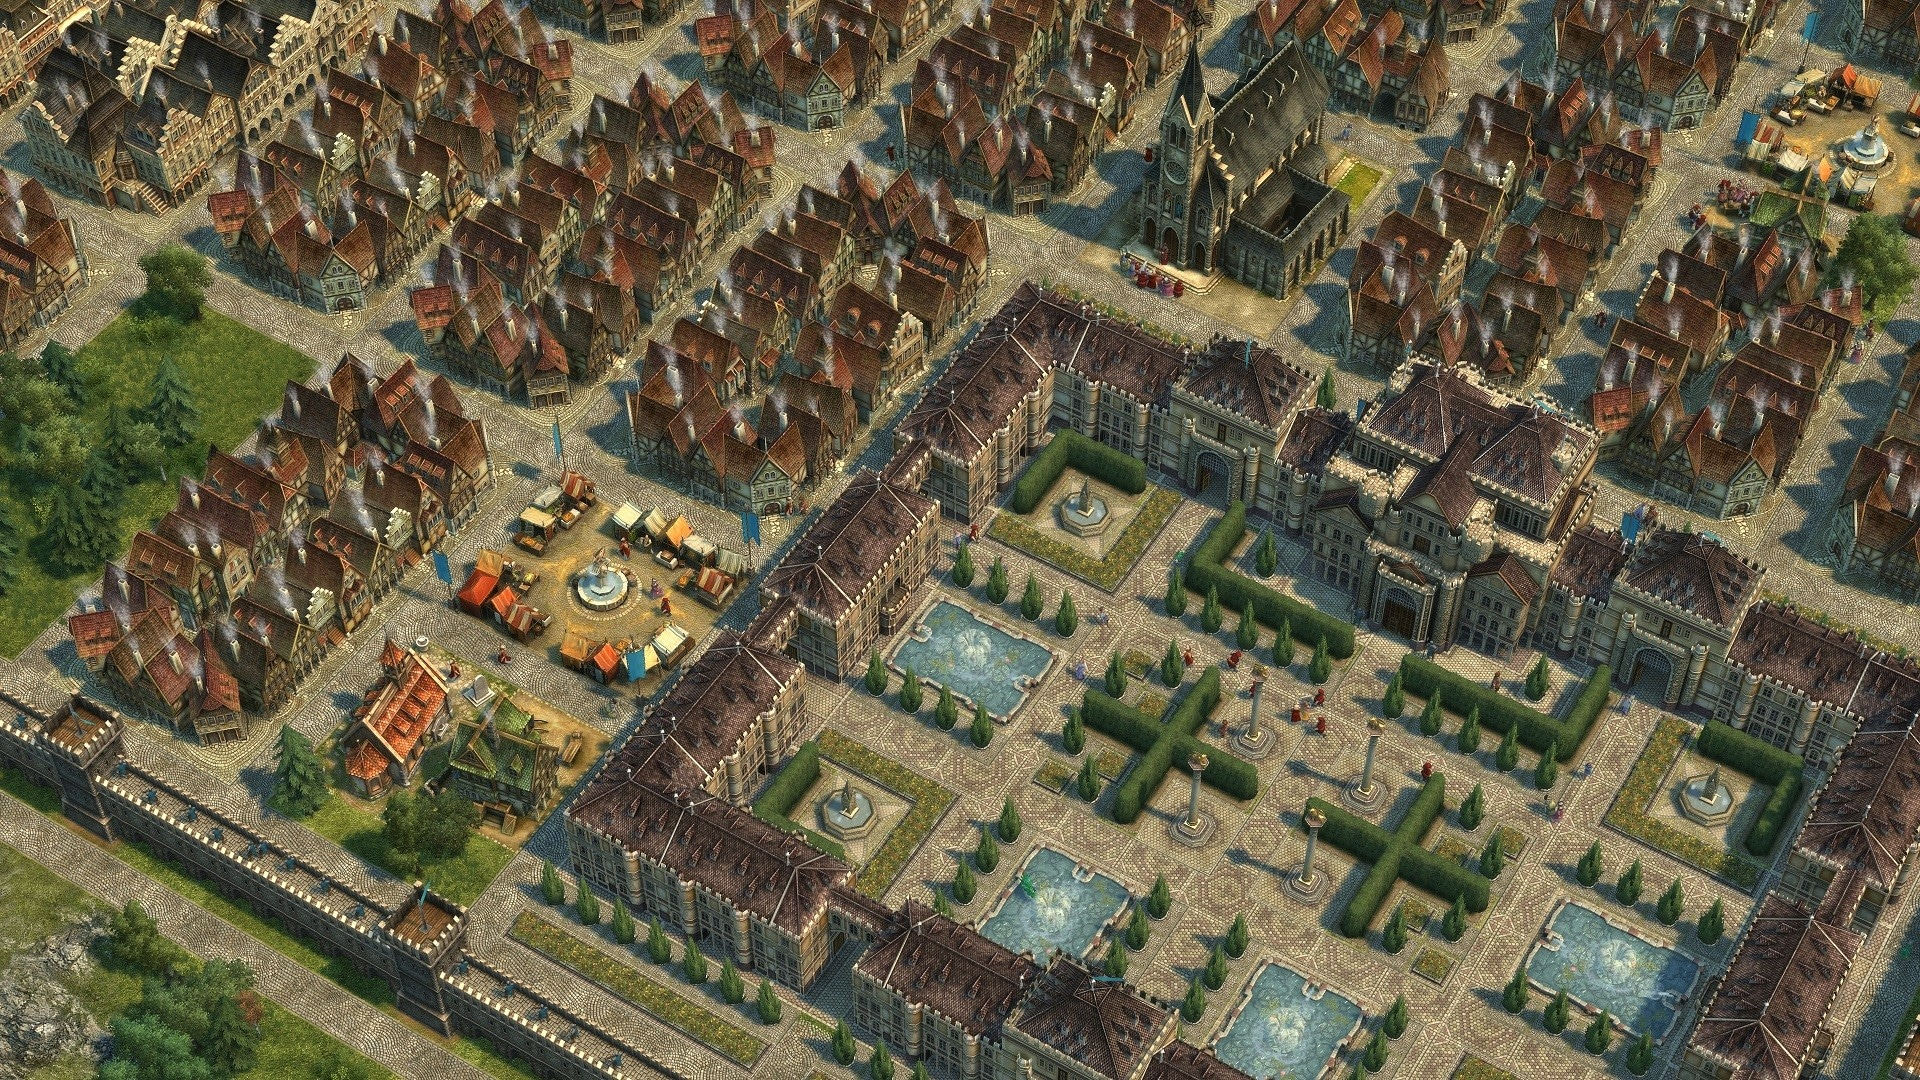 Anno 1404 - History Edition (PC) - Ubisoft Connect Key - GLOBAL - 3